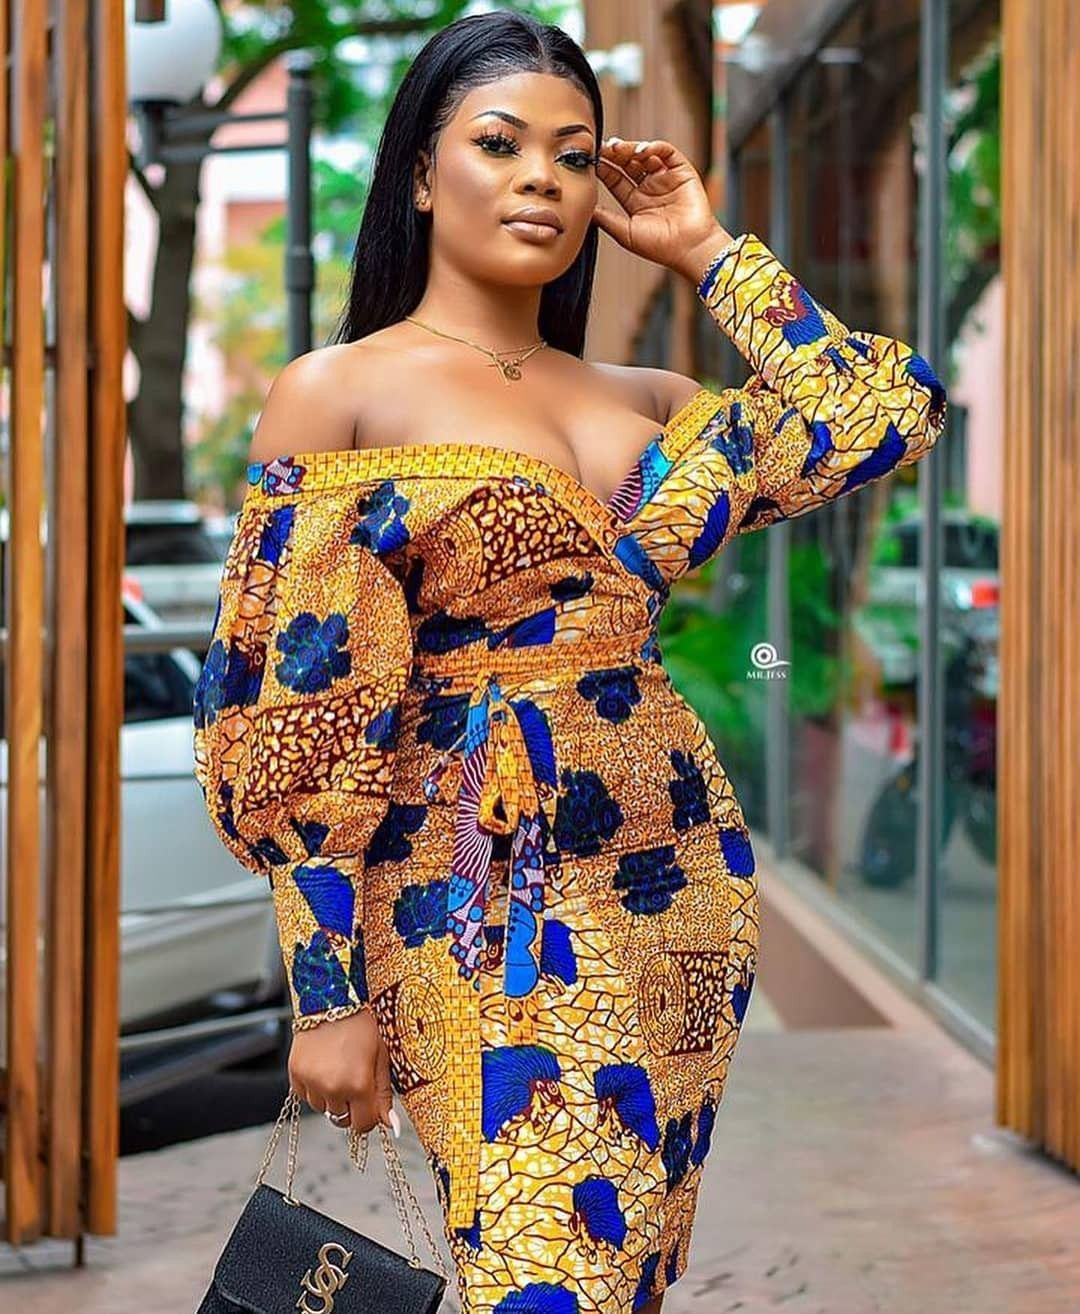 2019 Best Of Latest Ankara Short Gown Styles Africanstyleclothing Ankara Styles Picture Robe Africaine Tendance Modele De Robe Africaine Robe Africaine Droite